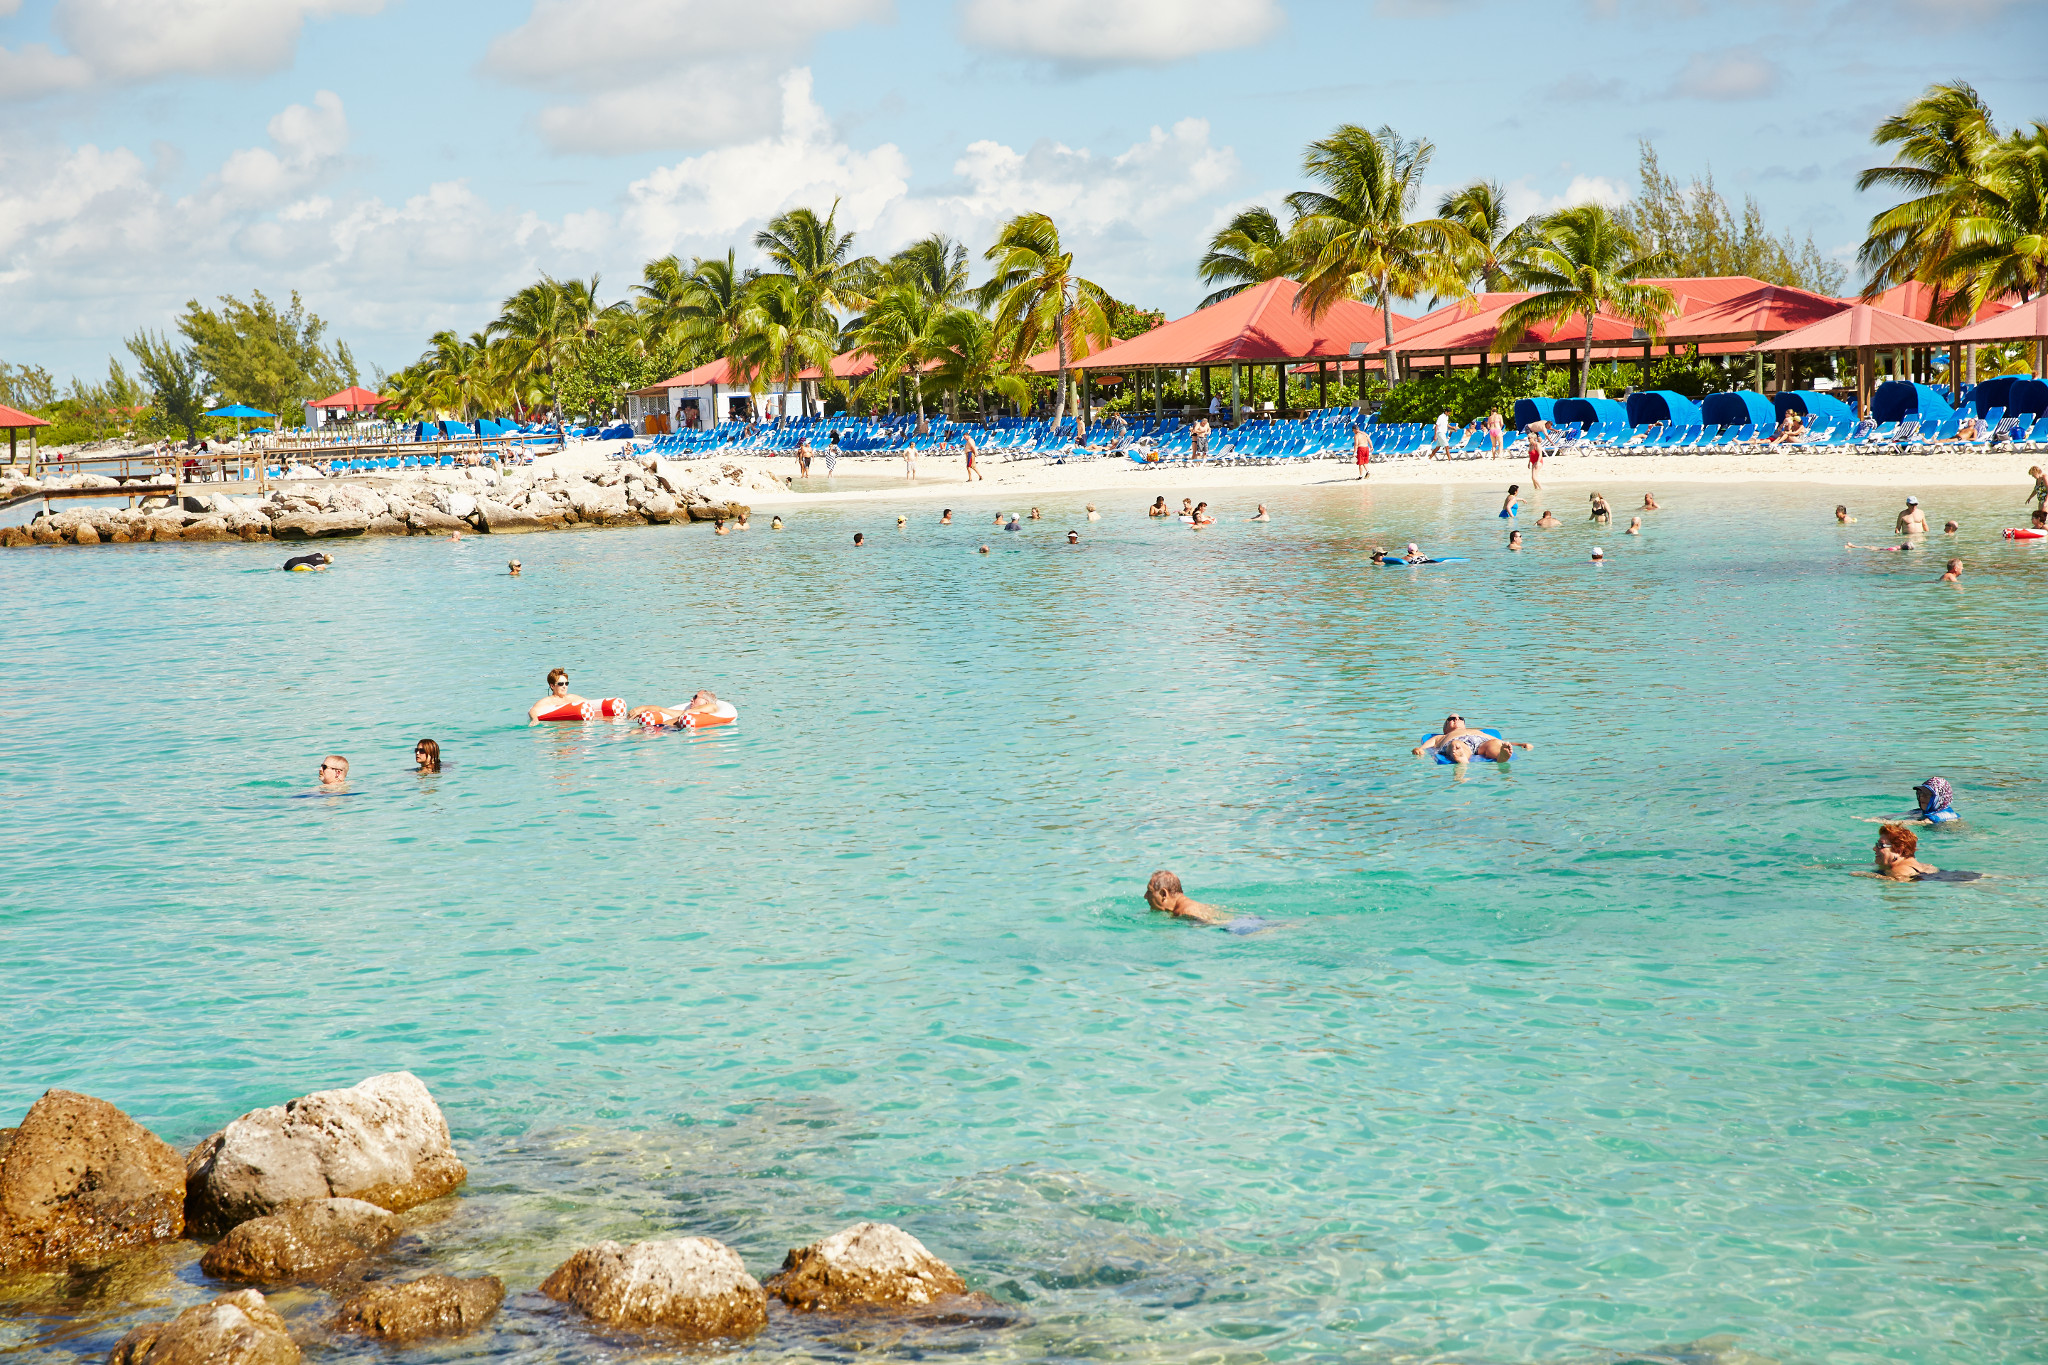 Private Bahamian Destination of Princess Cays Added to Itineraries of Six Carnival Cruise Line Ships Beginning in May 2017